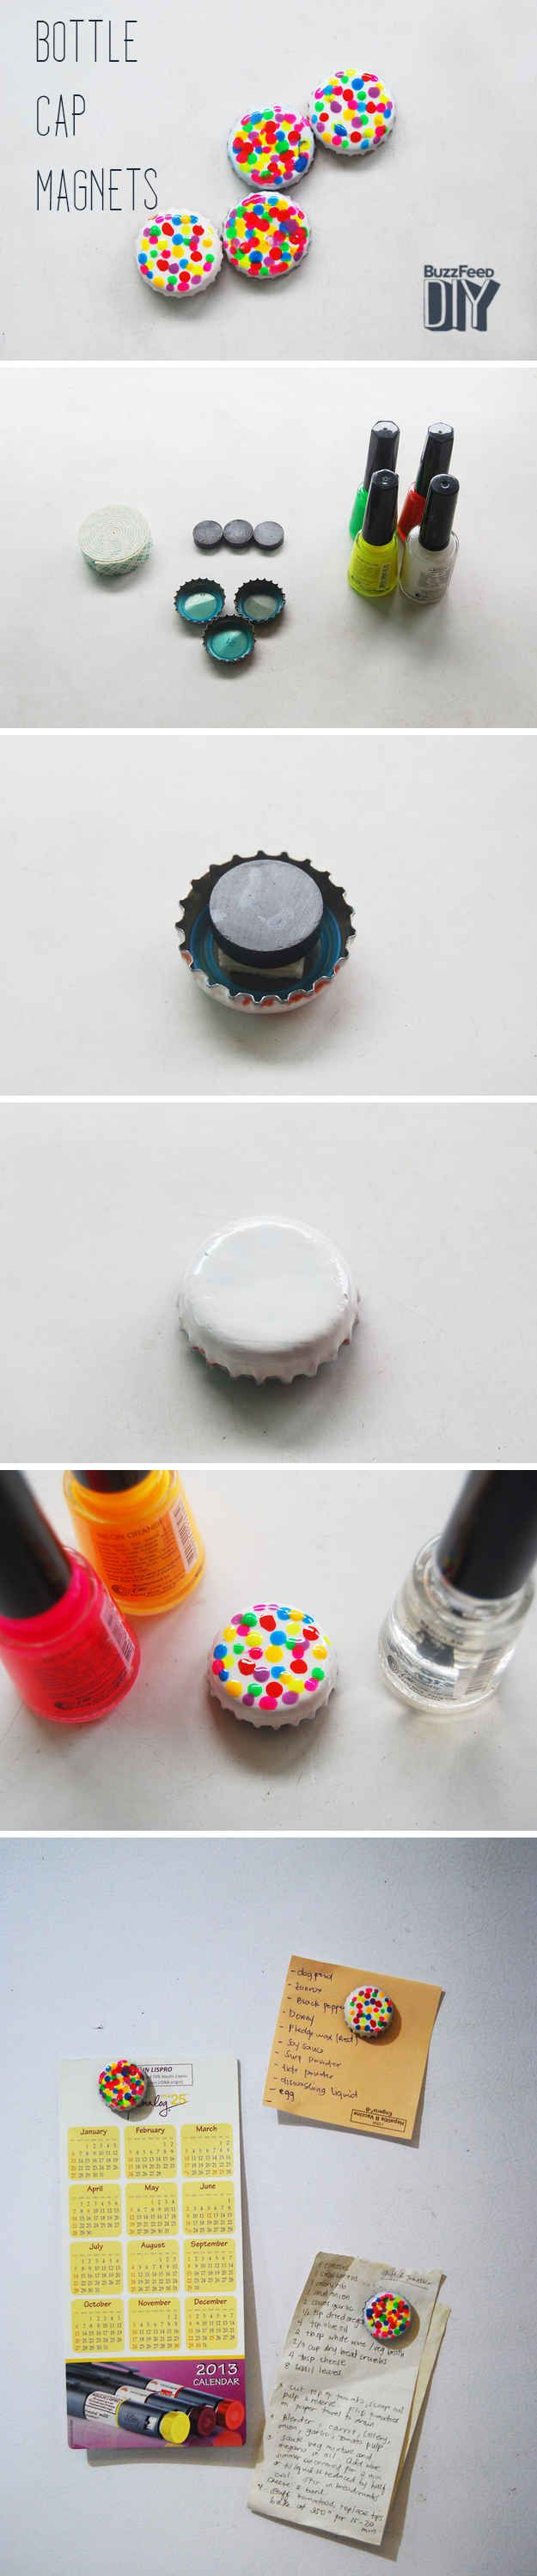 Bottle Cap Magnets - This is the cutest idea I've seen so far for the bottle caps!